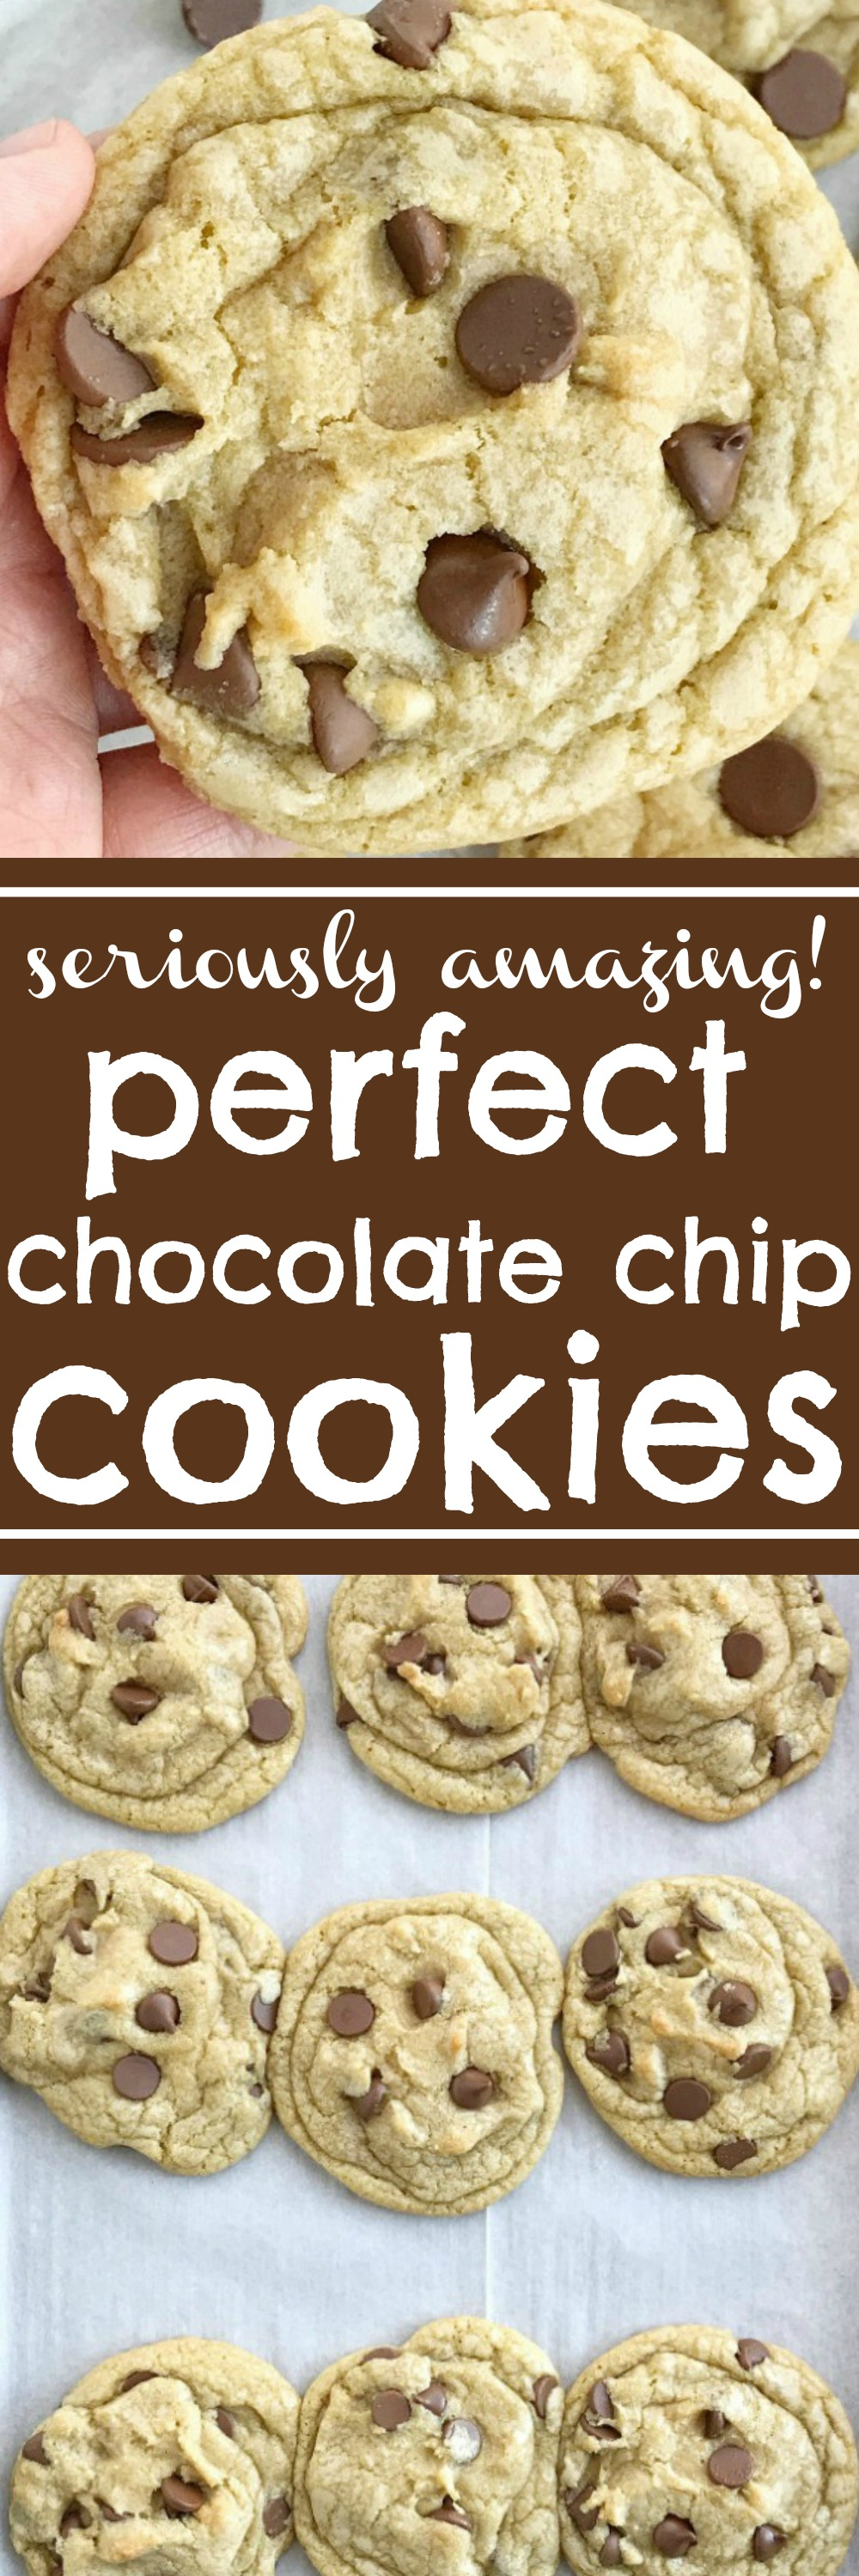 {seriously amazing!} Perfect Chocolate Chip Cookies ...